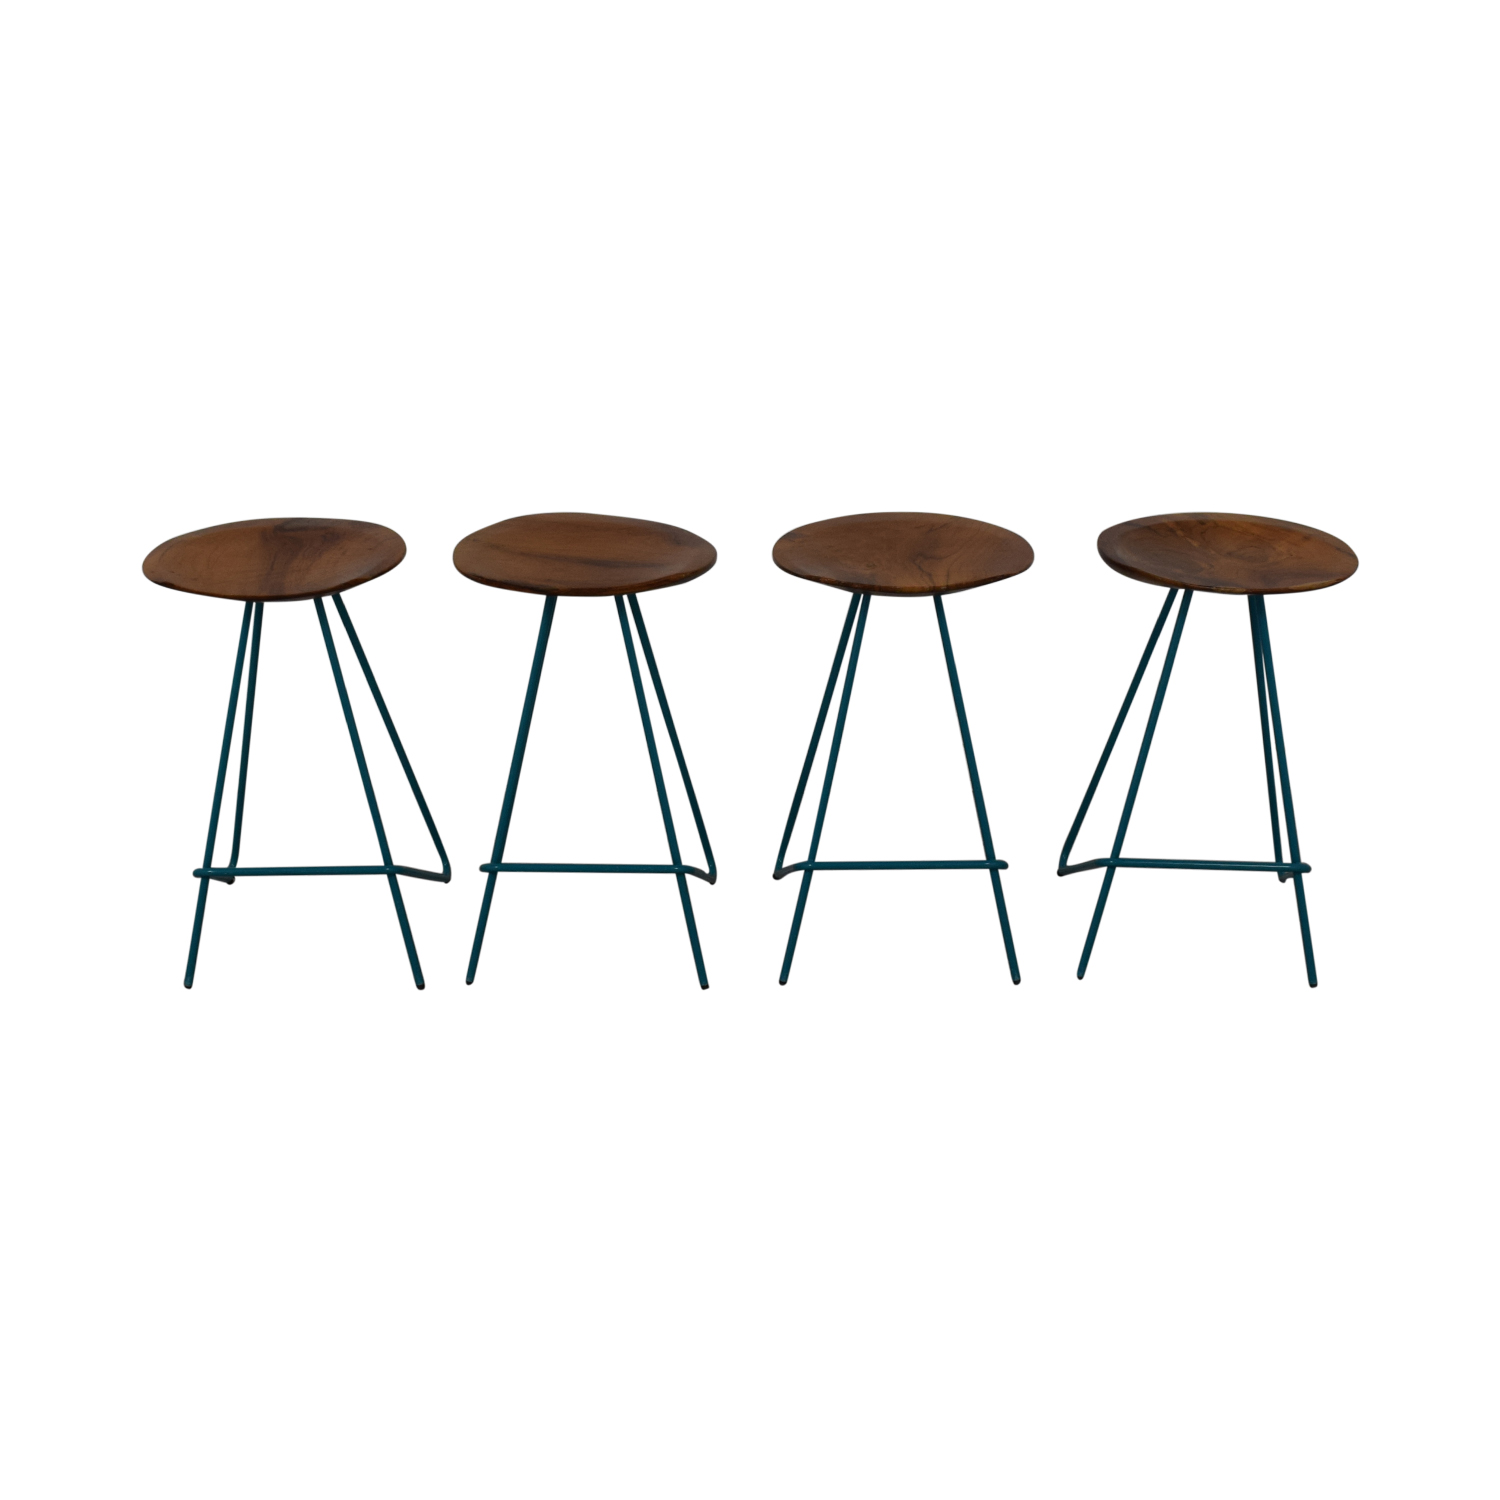 From the Source From the Source Teal Perch Bar Stools dimensions